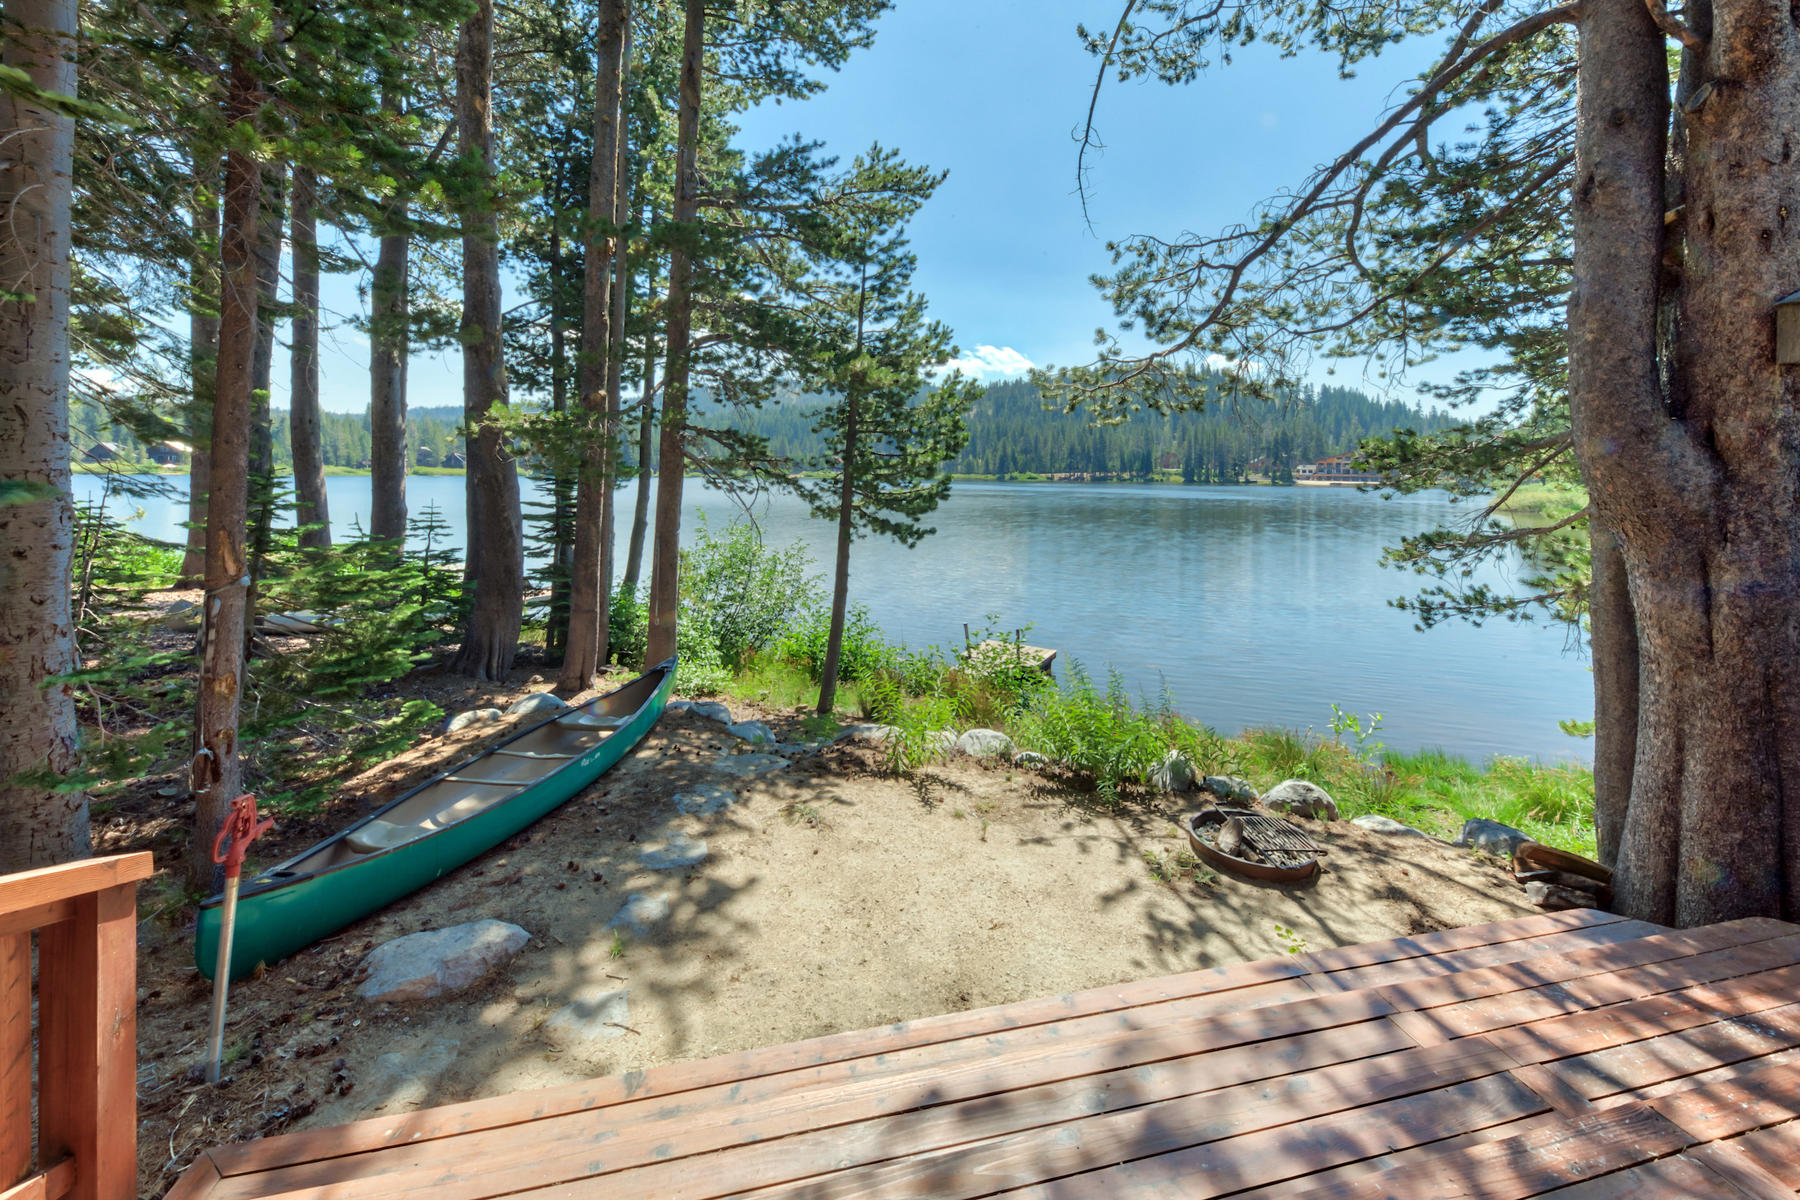 Additional photo for property listing at 1102 Island Way, Soda Springs CA 95724 1102 Island Way Soda Springs, California 95724 United States